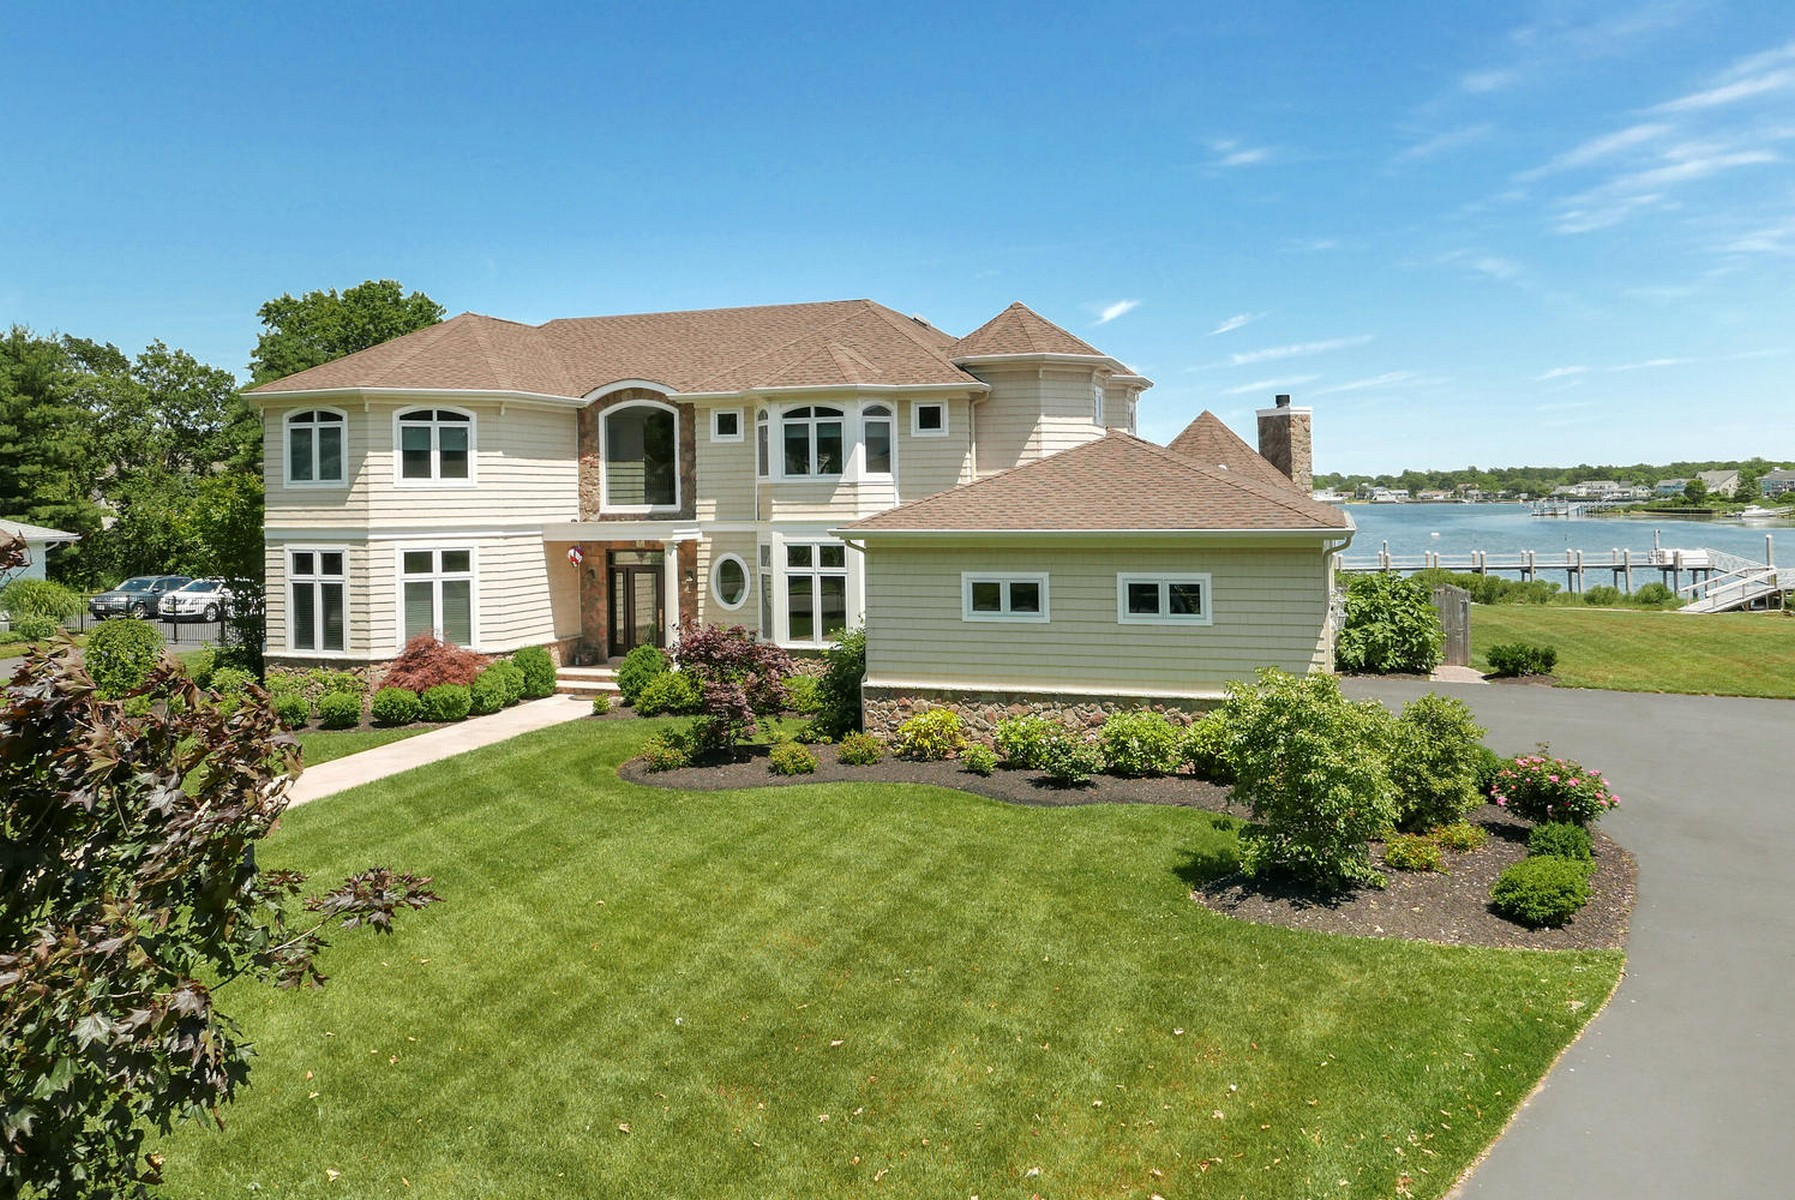 Single Family Home for Sale at Sophisticated Riverfront Home on the Shrewsbury River 74 Rivers Edge Dr. Little Silver, New Jersey, 07739 United States